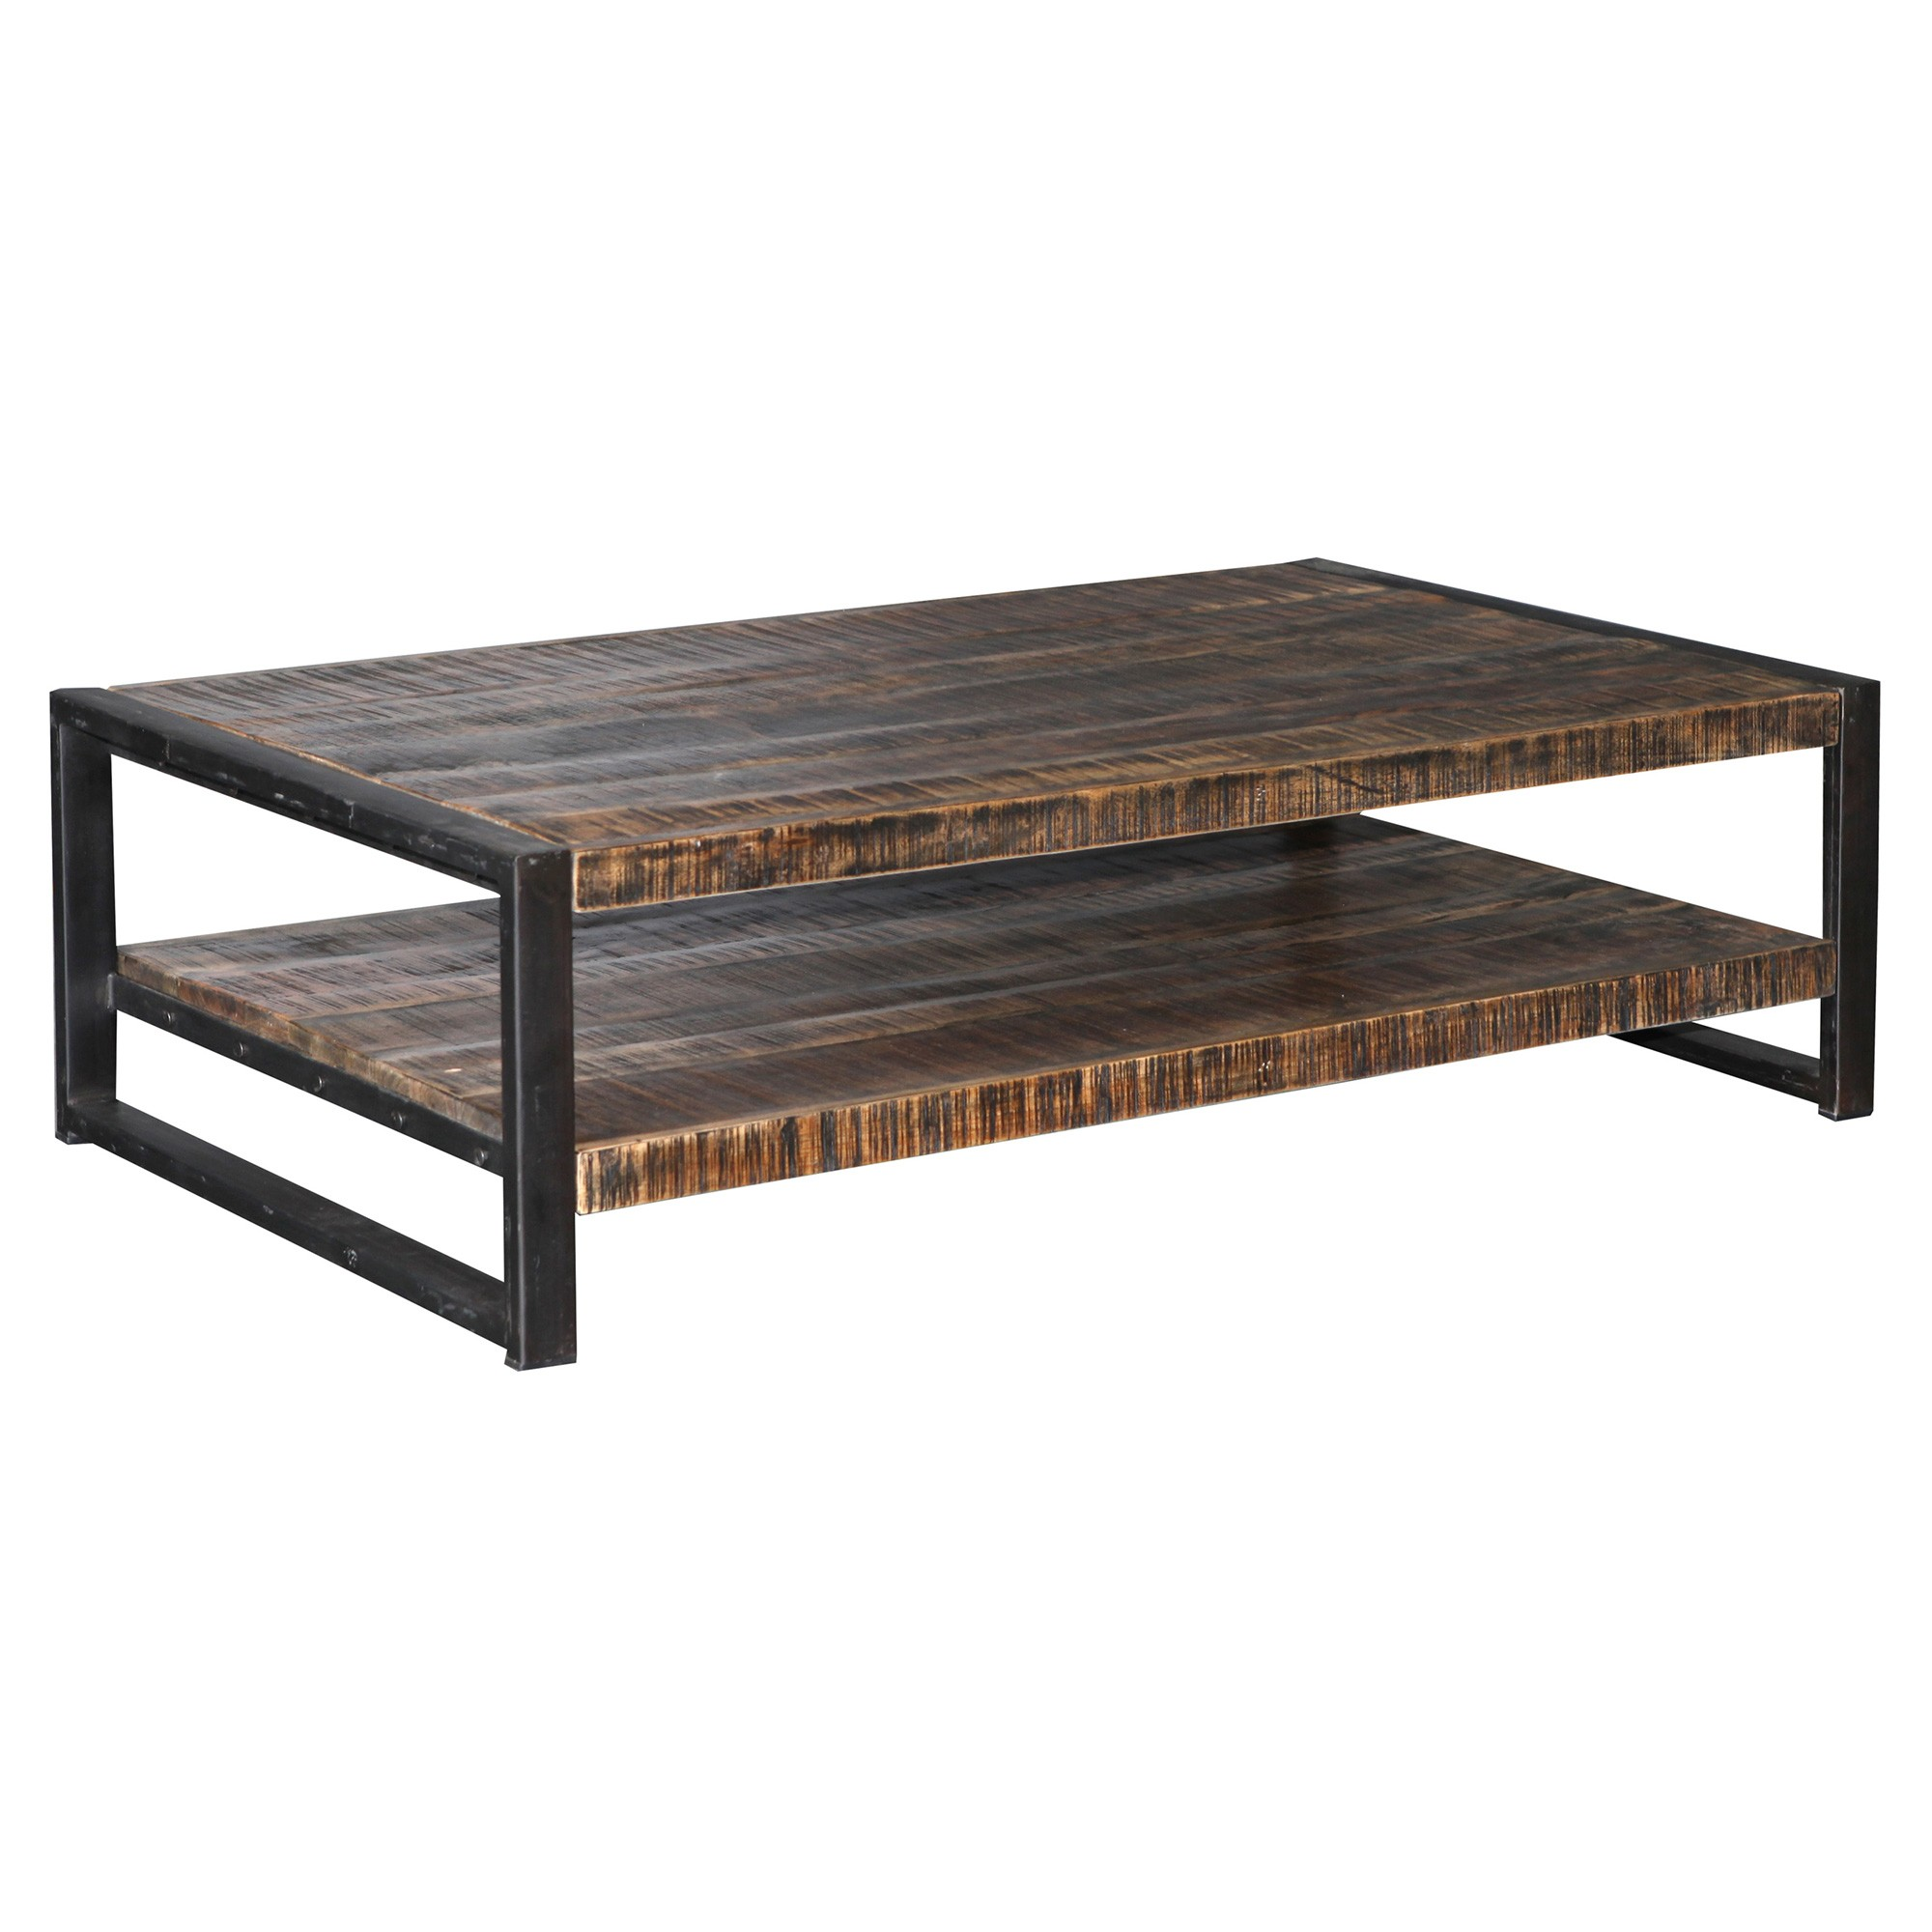 Armidale Industrial Timber & Metal Coffee Table, 140cm